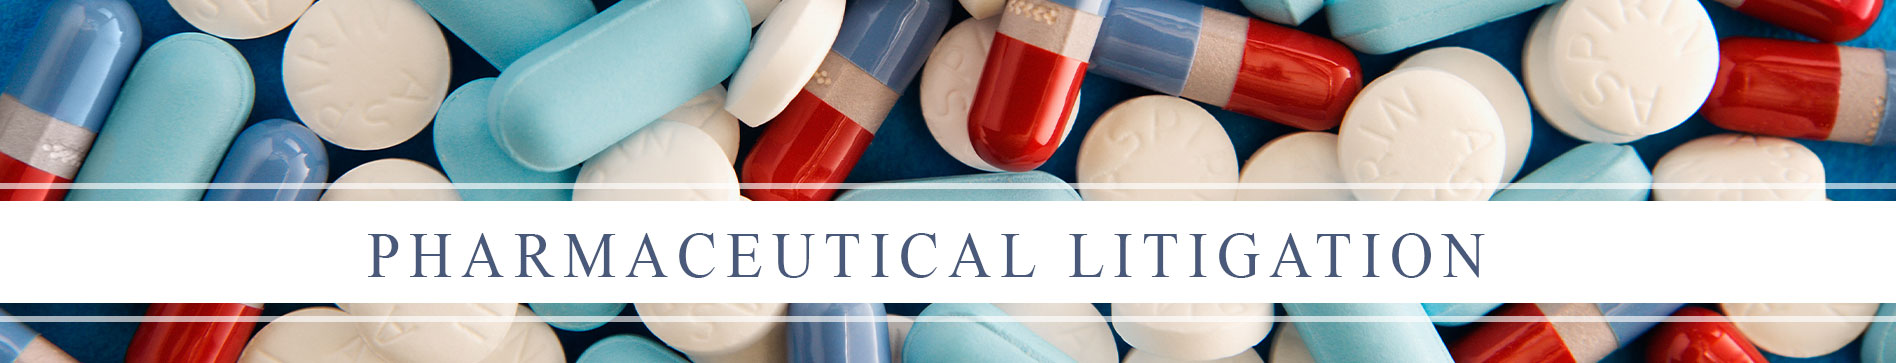 Pharmaceutical Litigation and Recall Attorneys of Texas - Pharmaceutical Lawyer